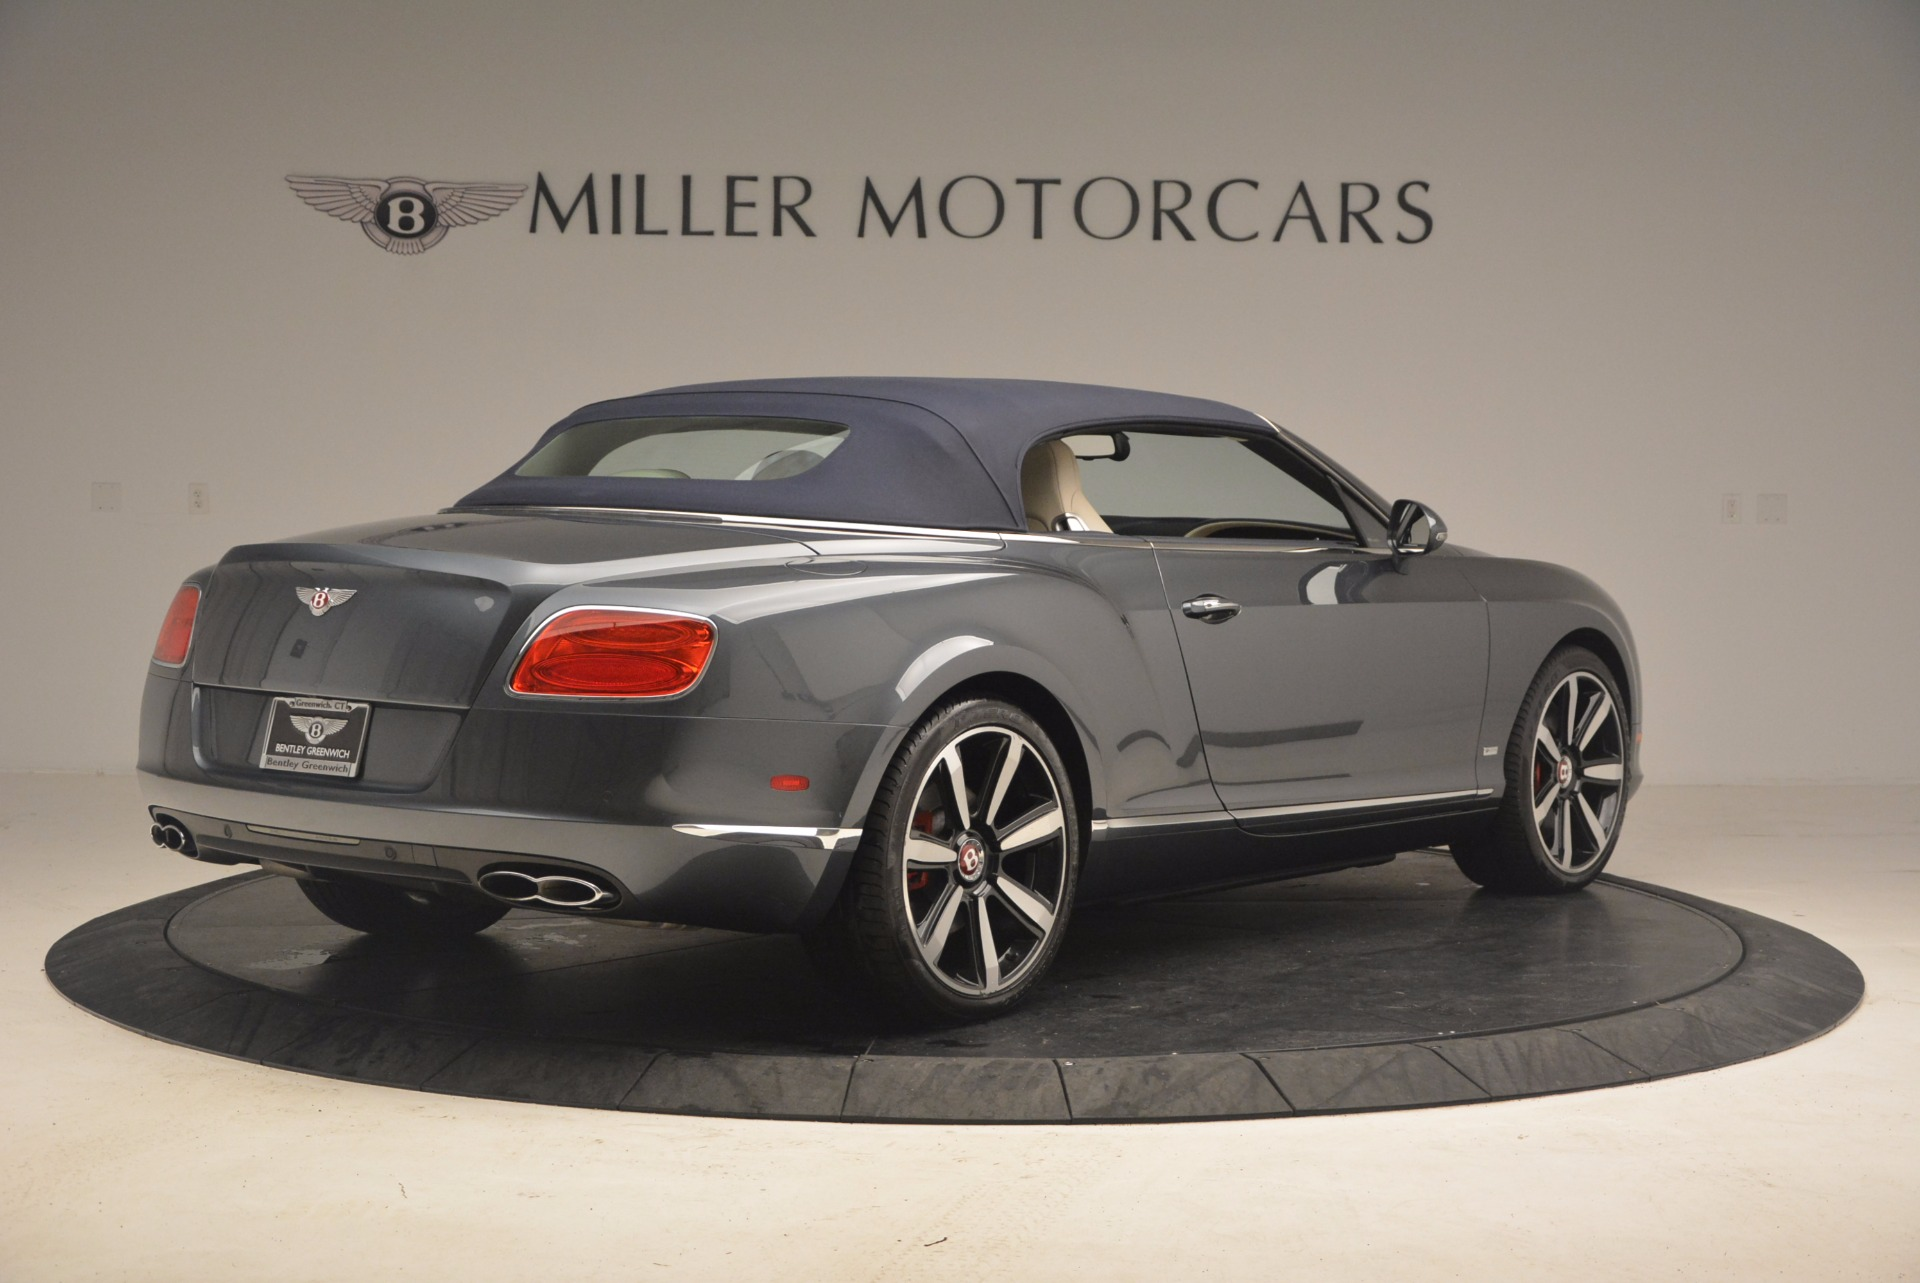 Used 2013 Bentley Continental GT V8 Le Mans Edition, 1 of 48 For Sale In Westport, CT 1288_p21